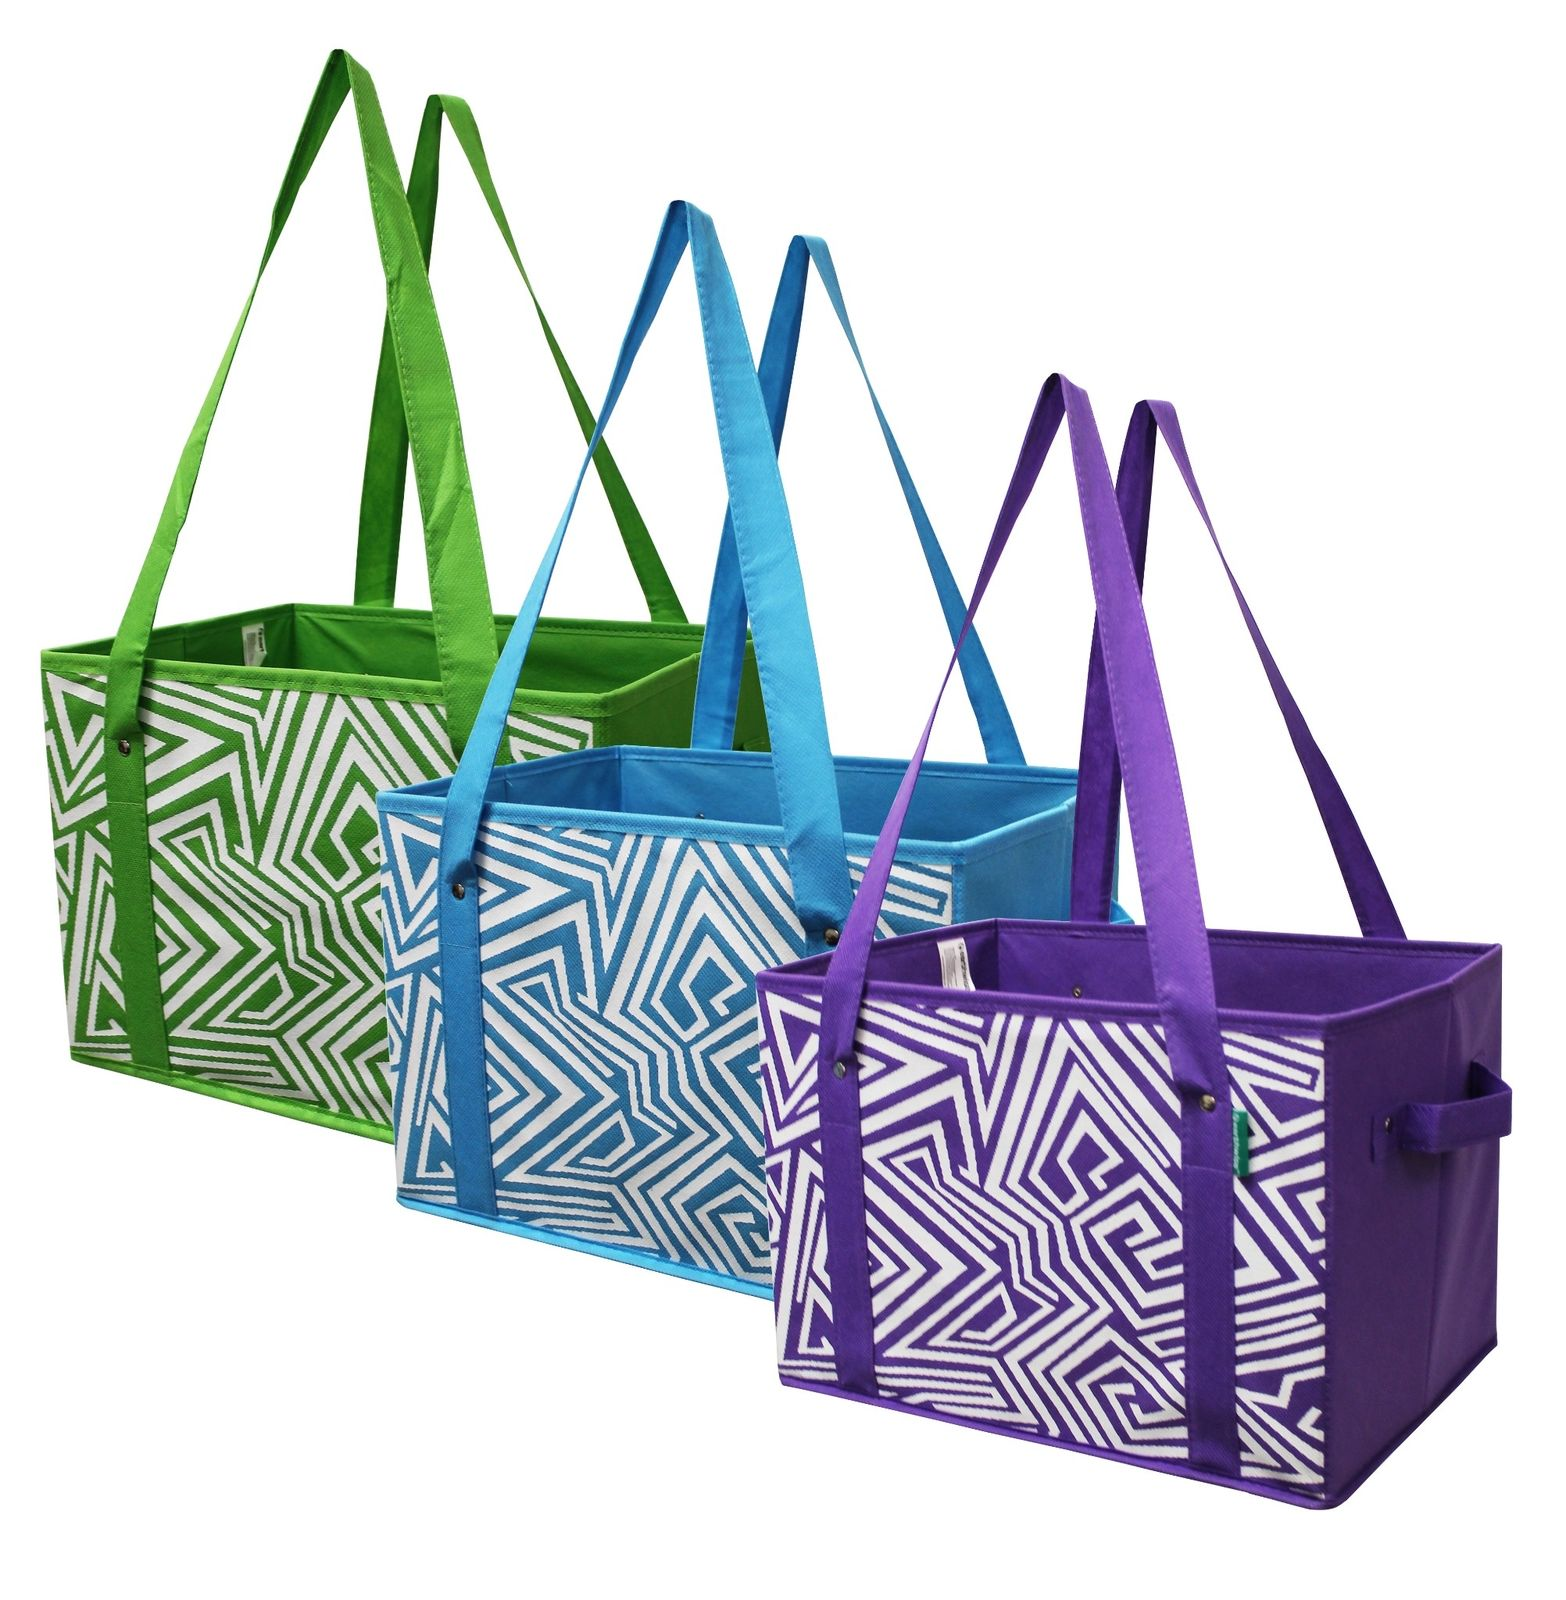 Dailylike Separate Recycling Bins Bags Reusable Grocery Multi Purpose Shopping Bag for Kitchen Office Home Set of 3 Dog